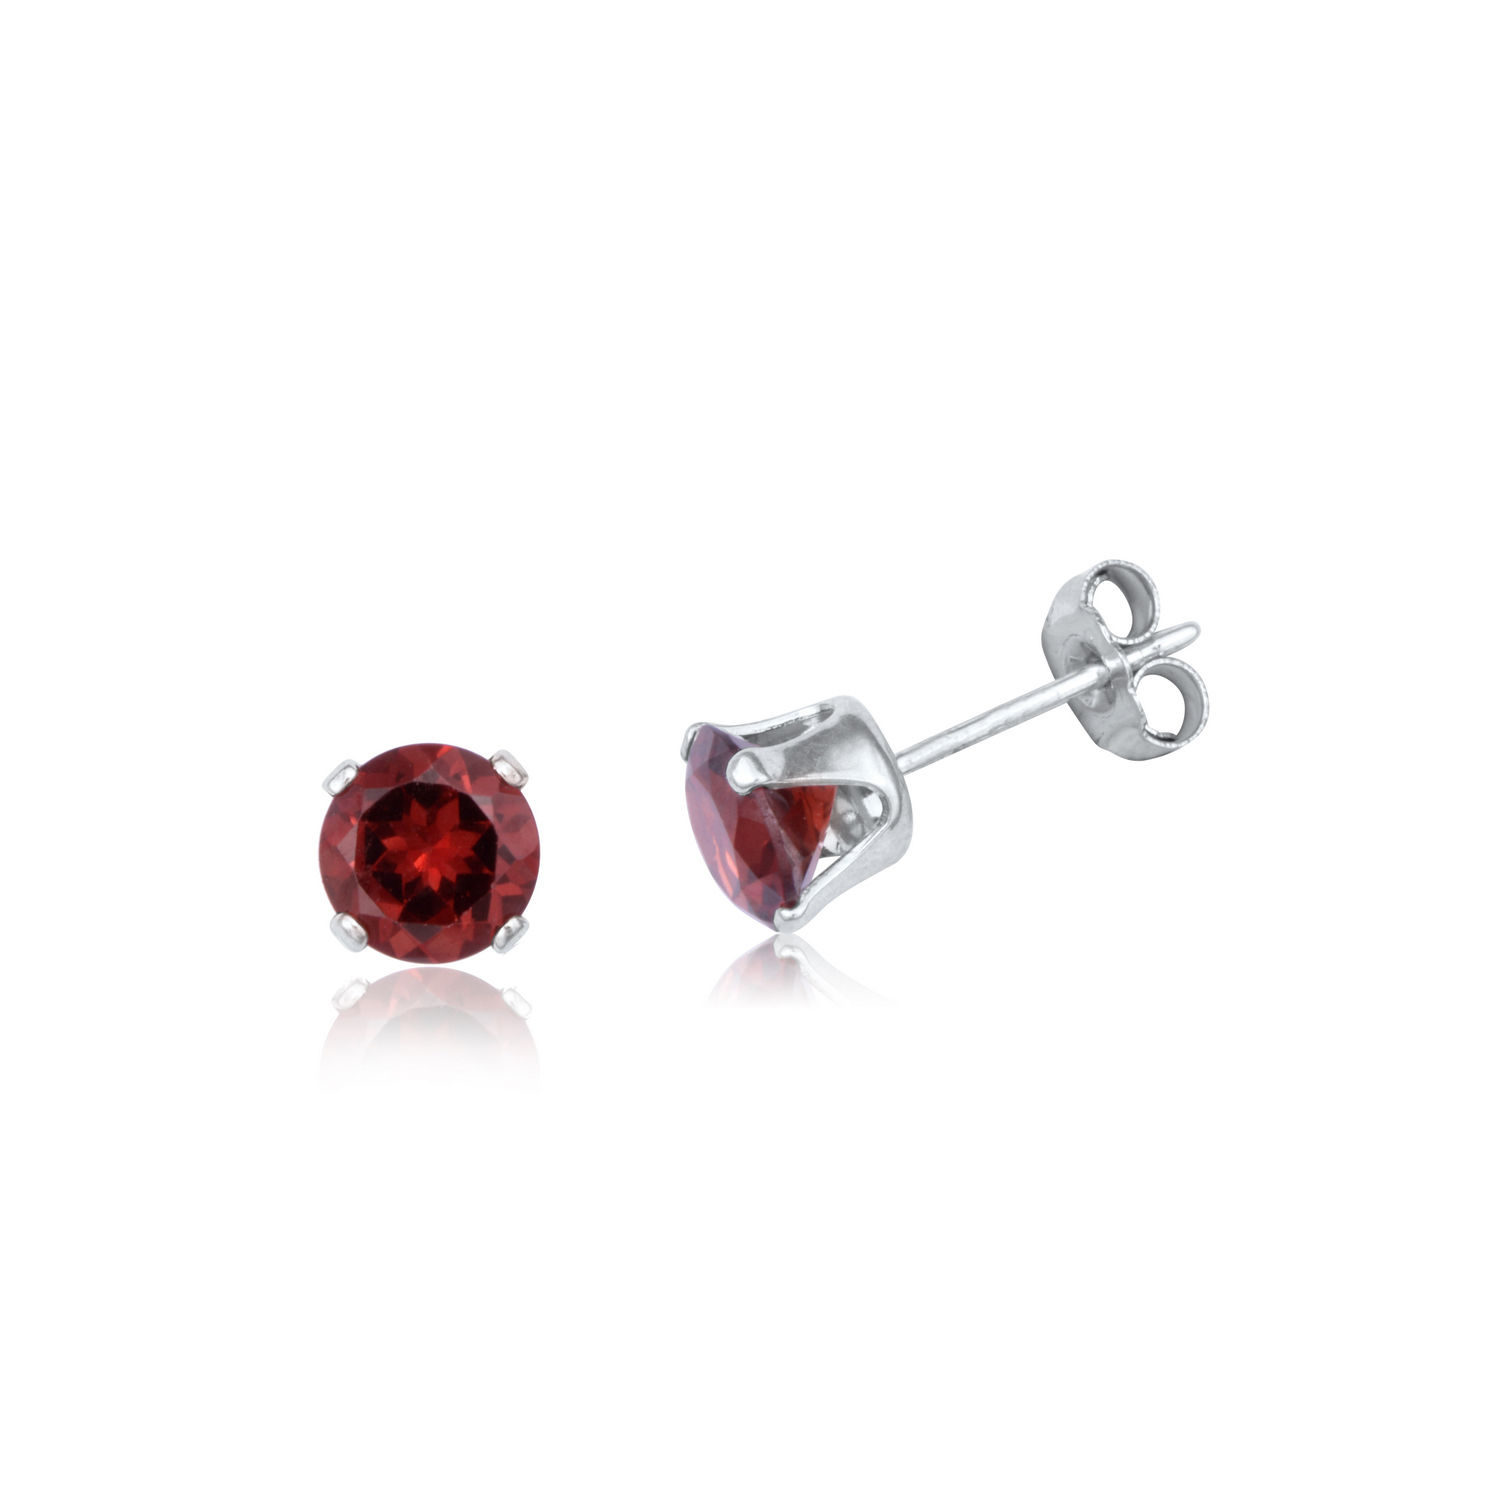 55% off Genuine AAA Garnet Sterling Silver Stud Earrings